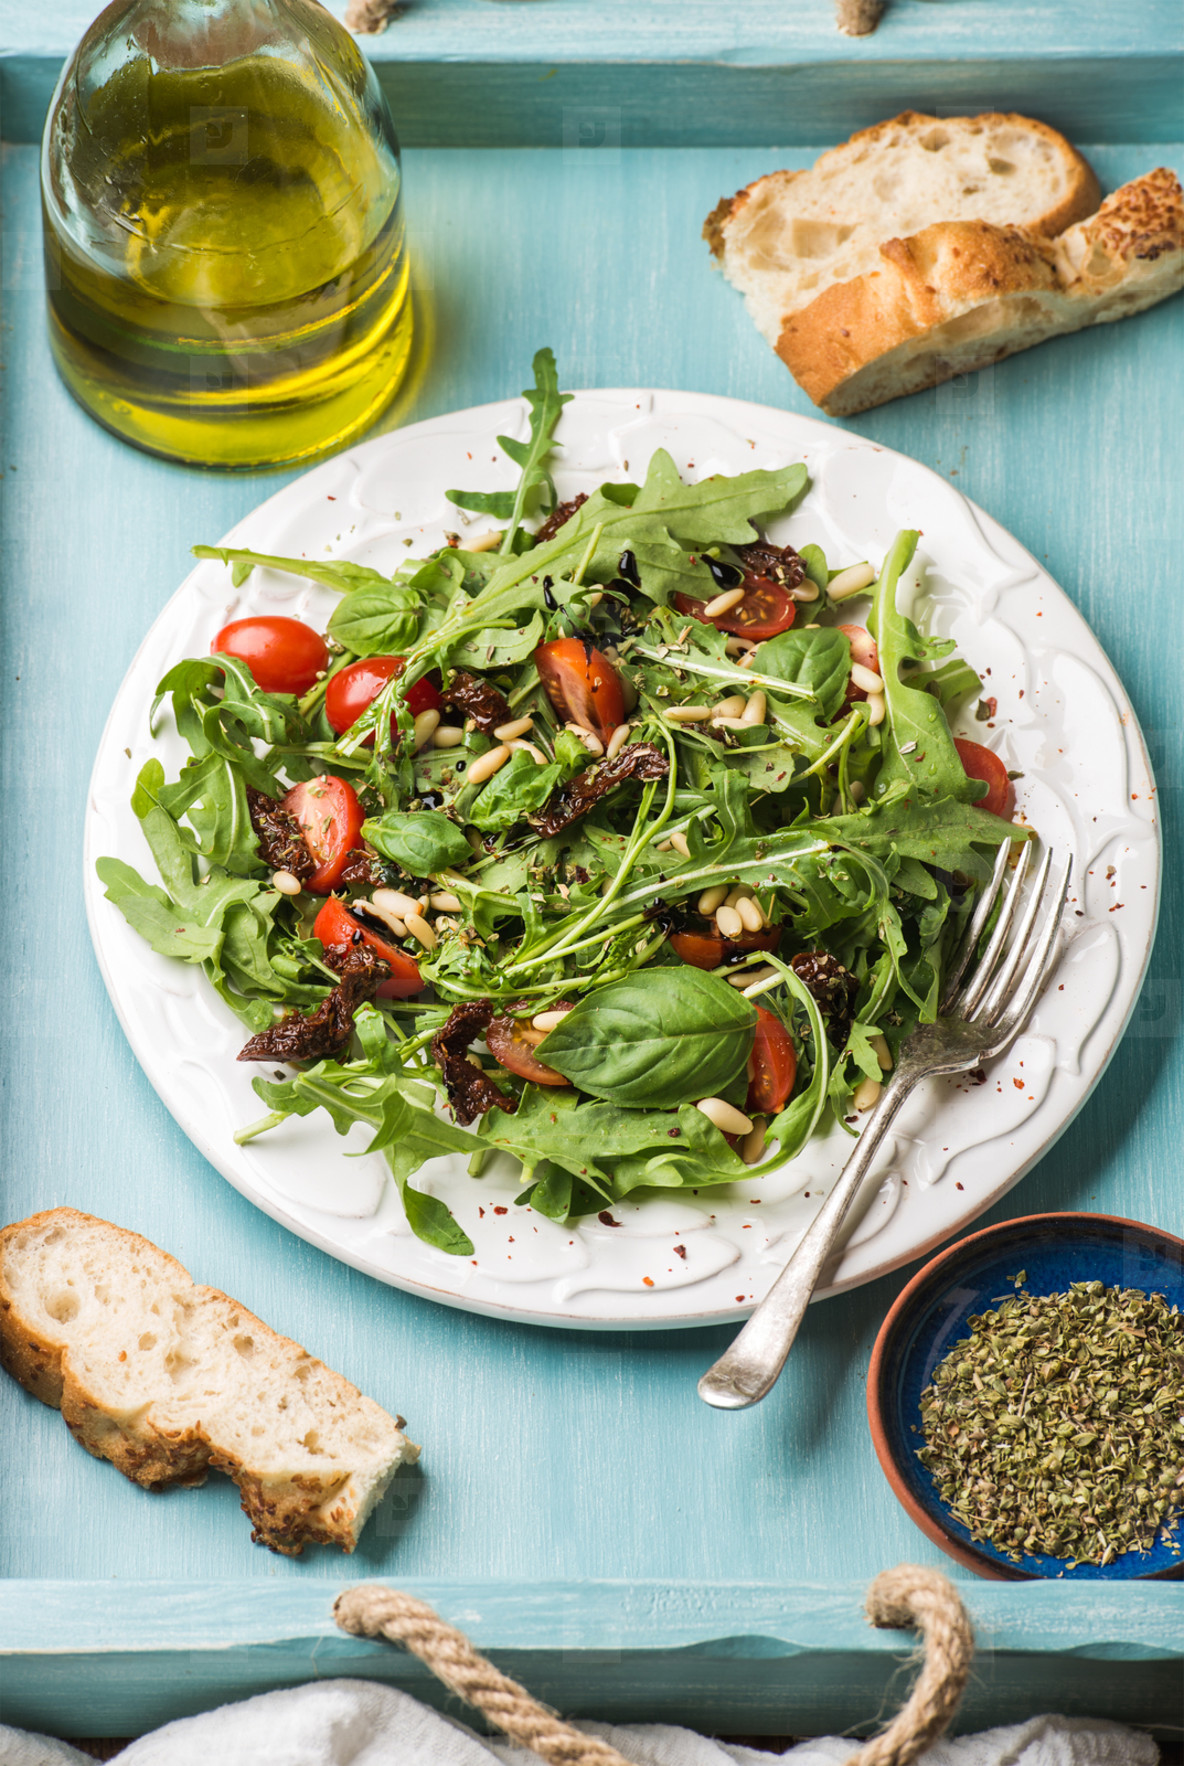 Salad with arugula  cherry tomatoes  pine nuts and herbs on white ceramic plate over blue wood background